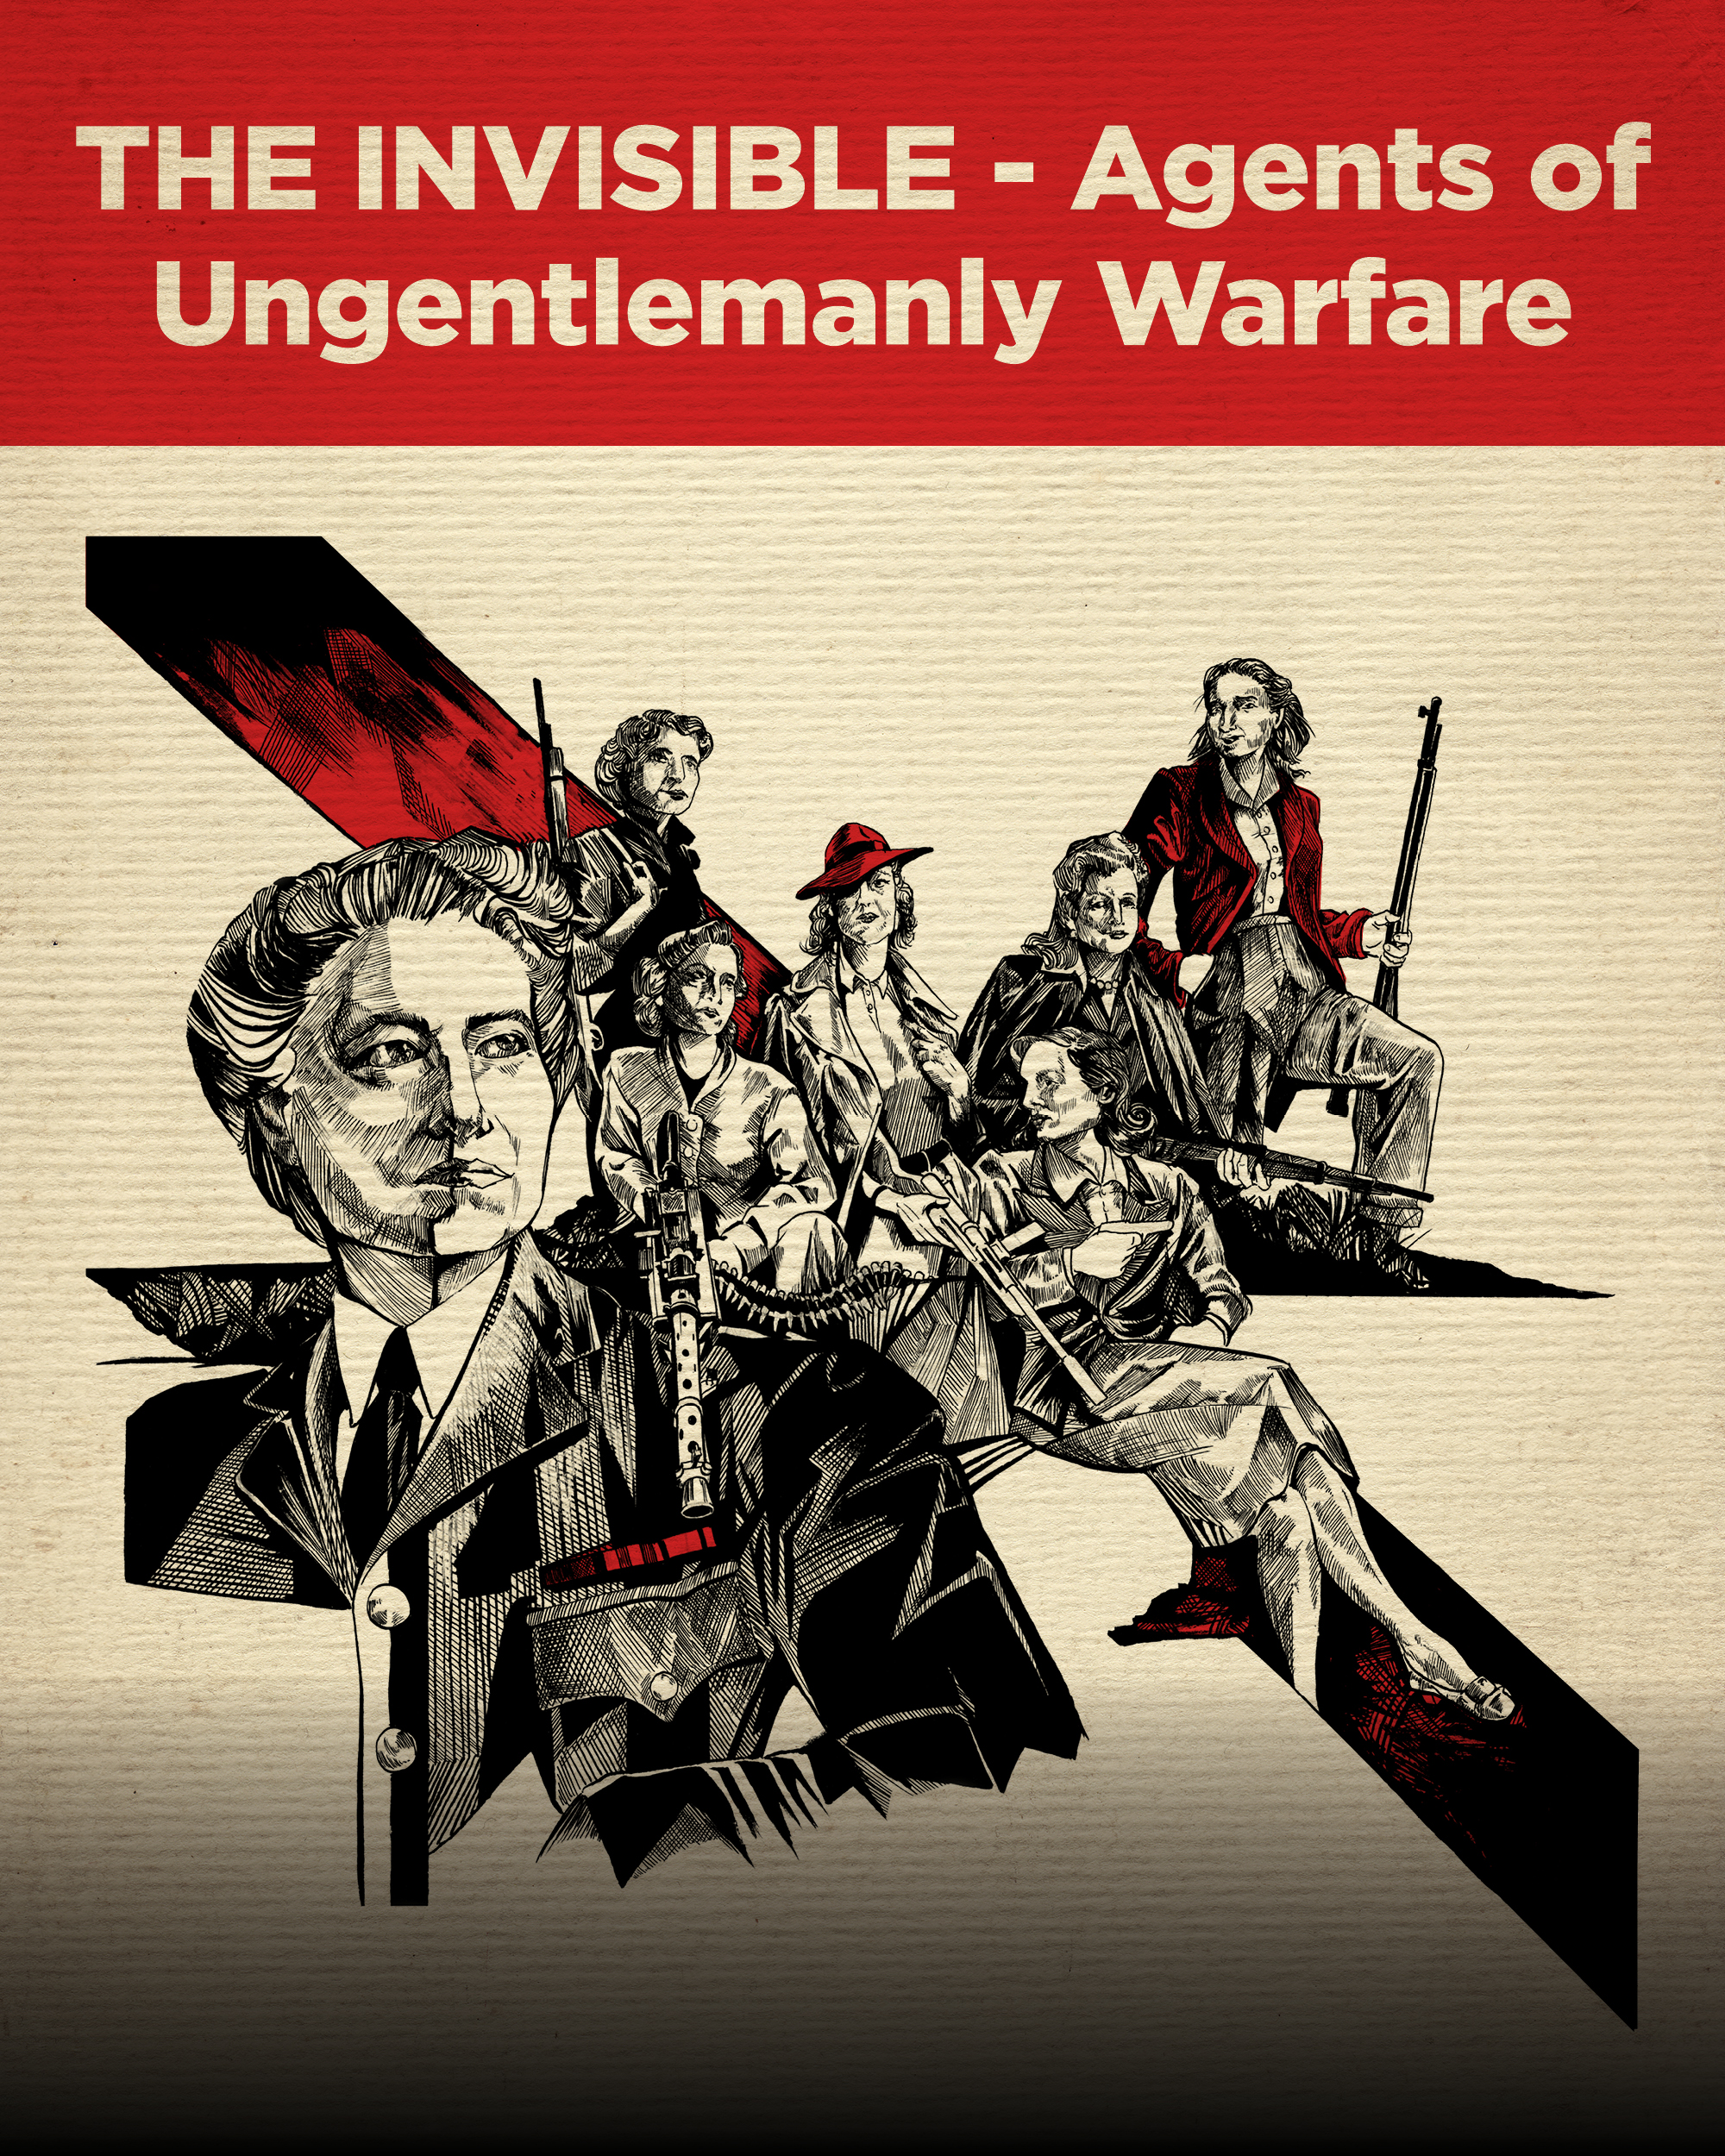 THE INVISIBLE - Agents of Ungentlemanly Warfare